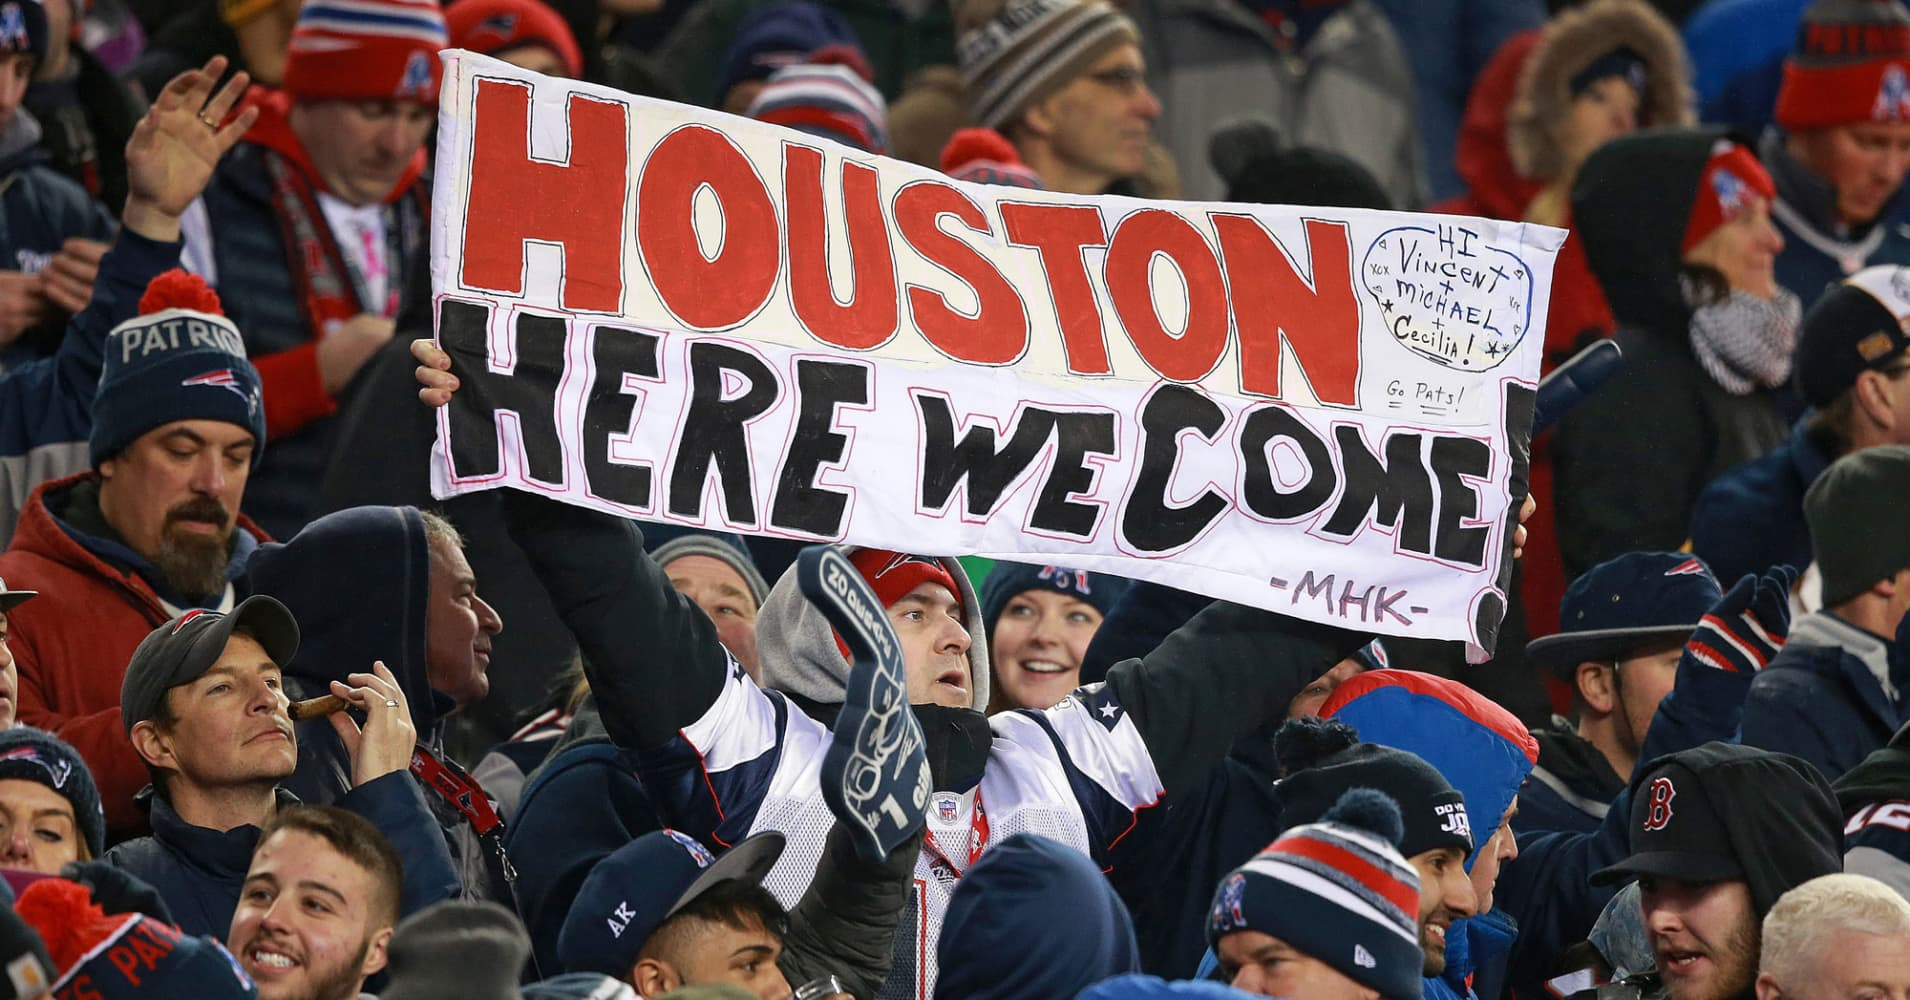 Jetblue delta american southwest and united airlines have added some extra flights to accommodate all those fans who want to get to houston